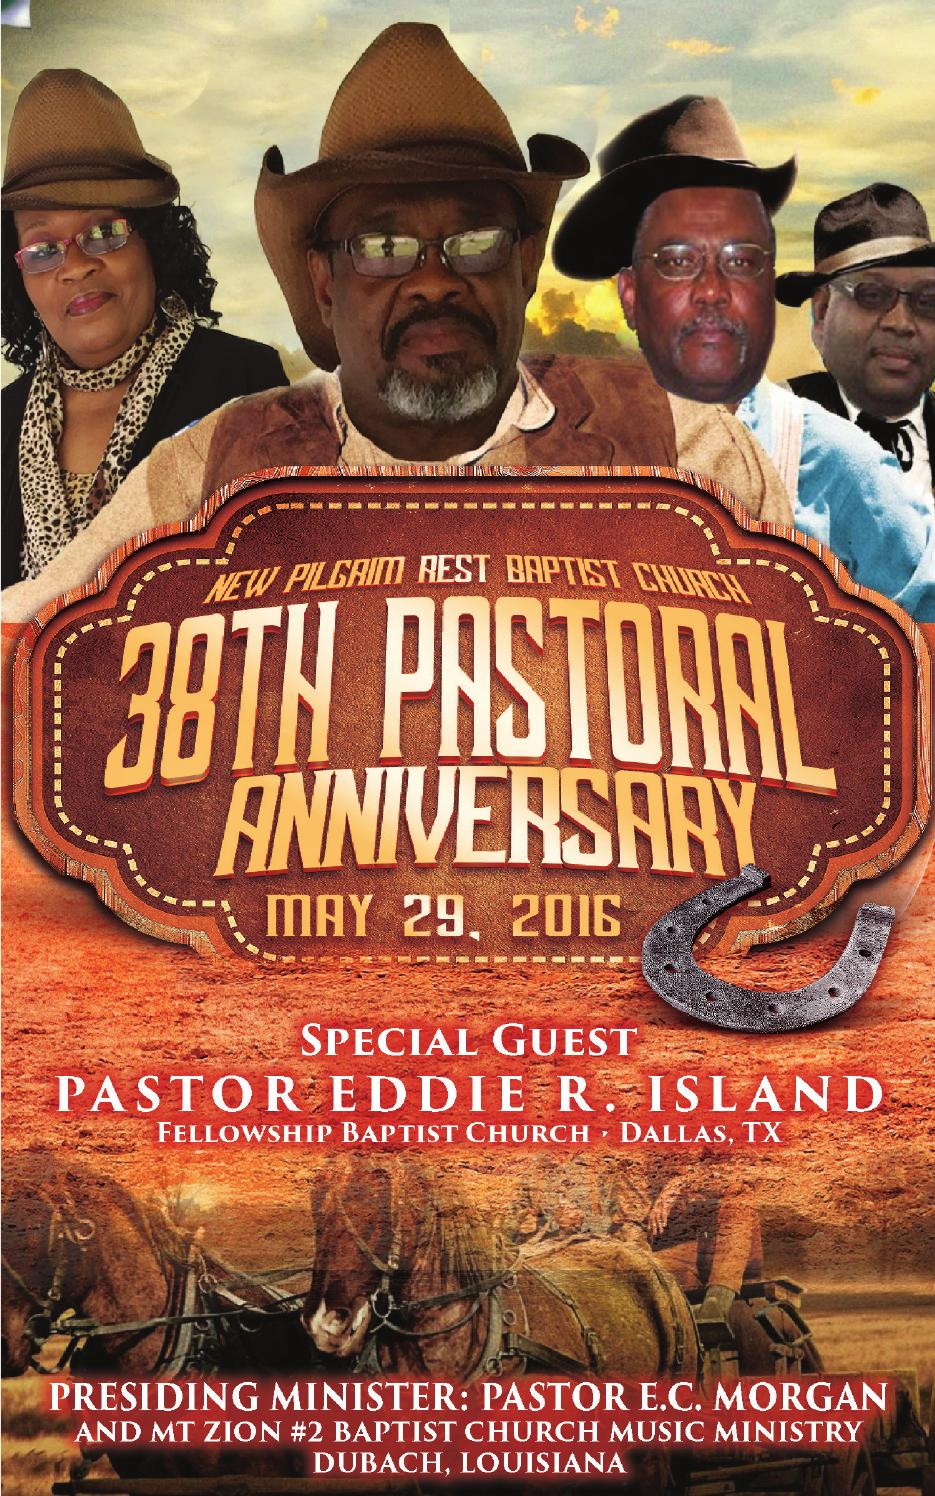 Union pastors anniversary program by herman dickey issuu pastor first lady banks anniversary program 2016 altavistaventures Images